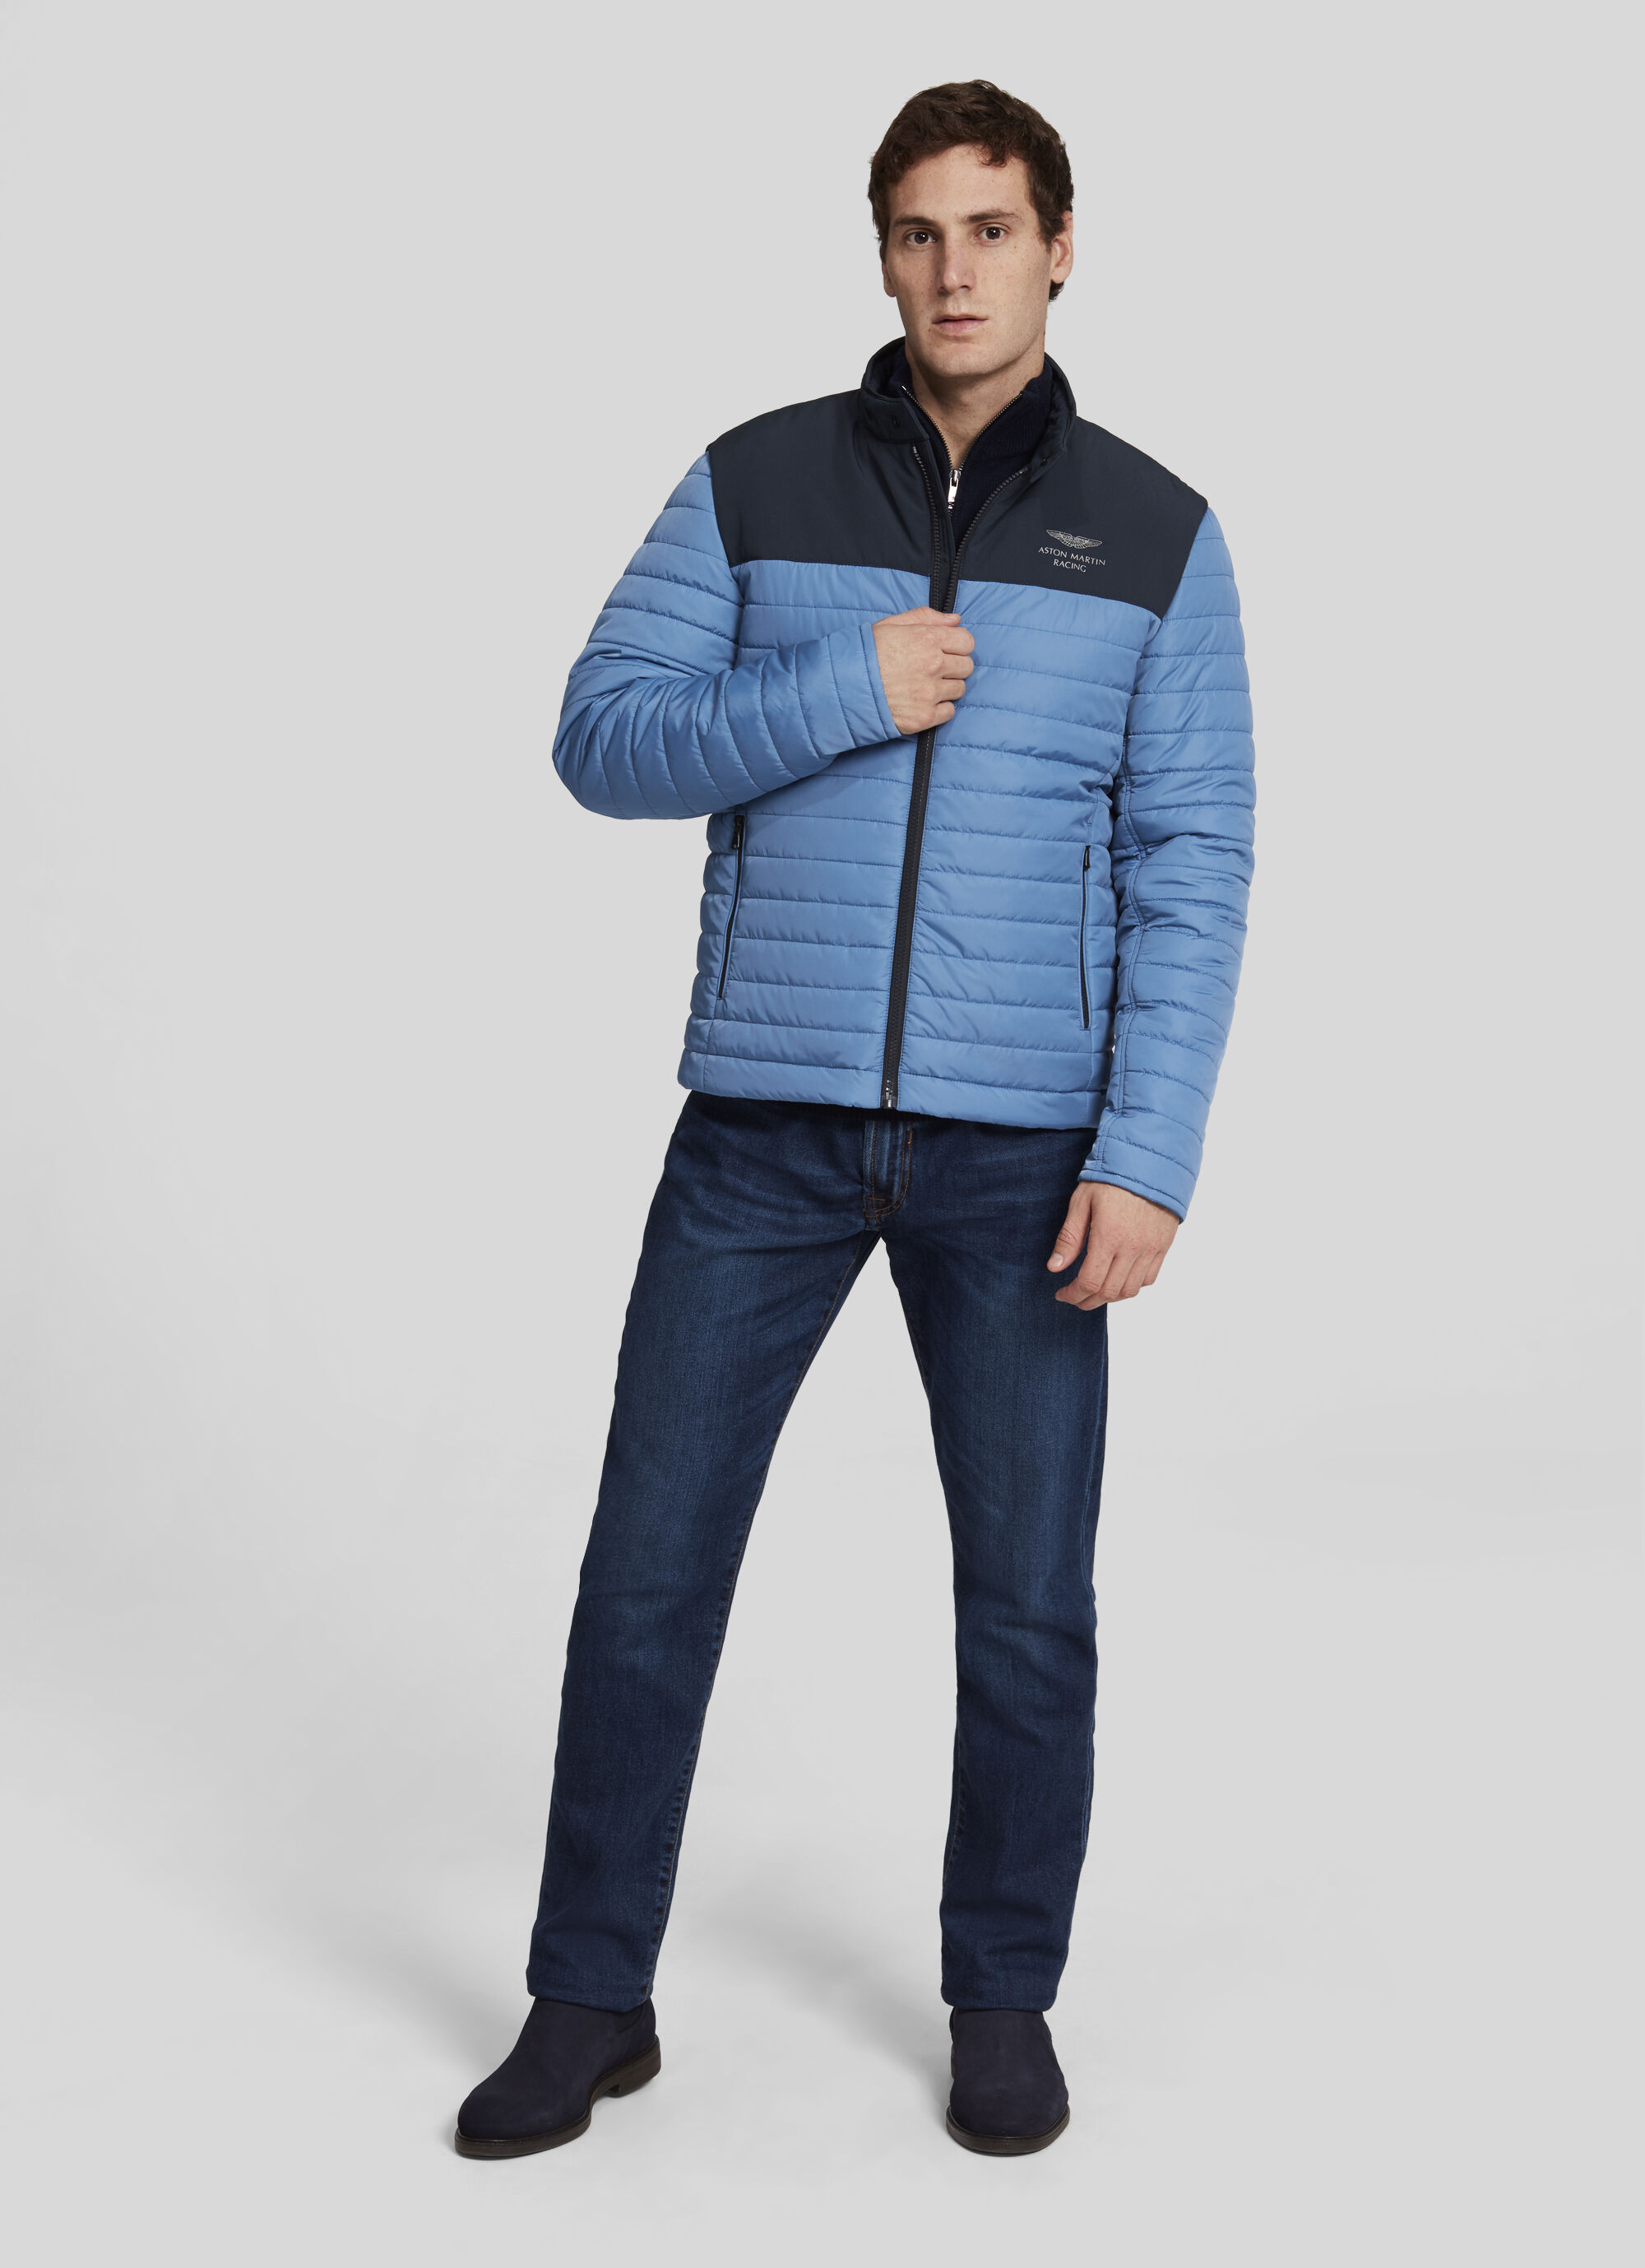 aston martin racing men's quilted moto jacket | large | navy/pwd blue